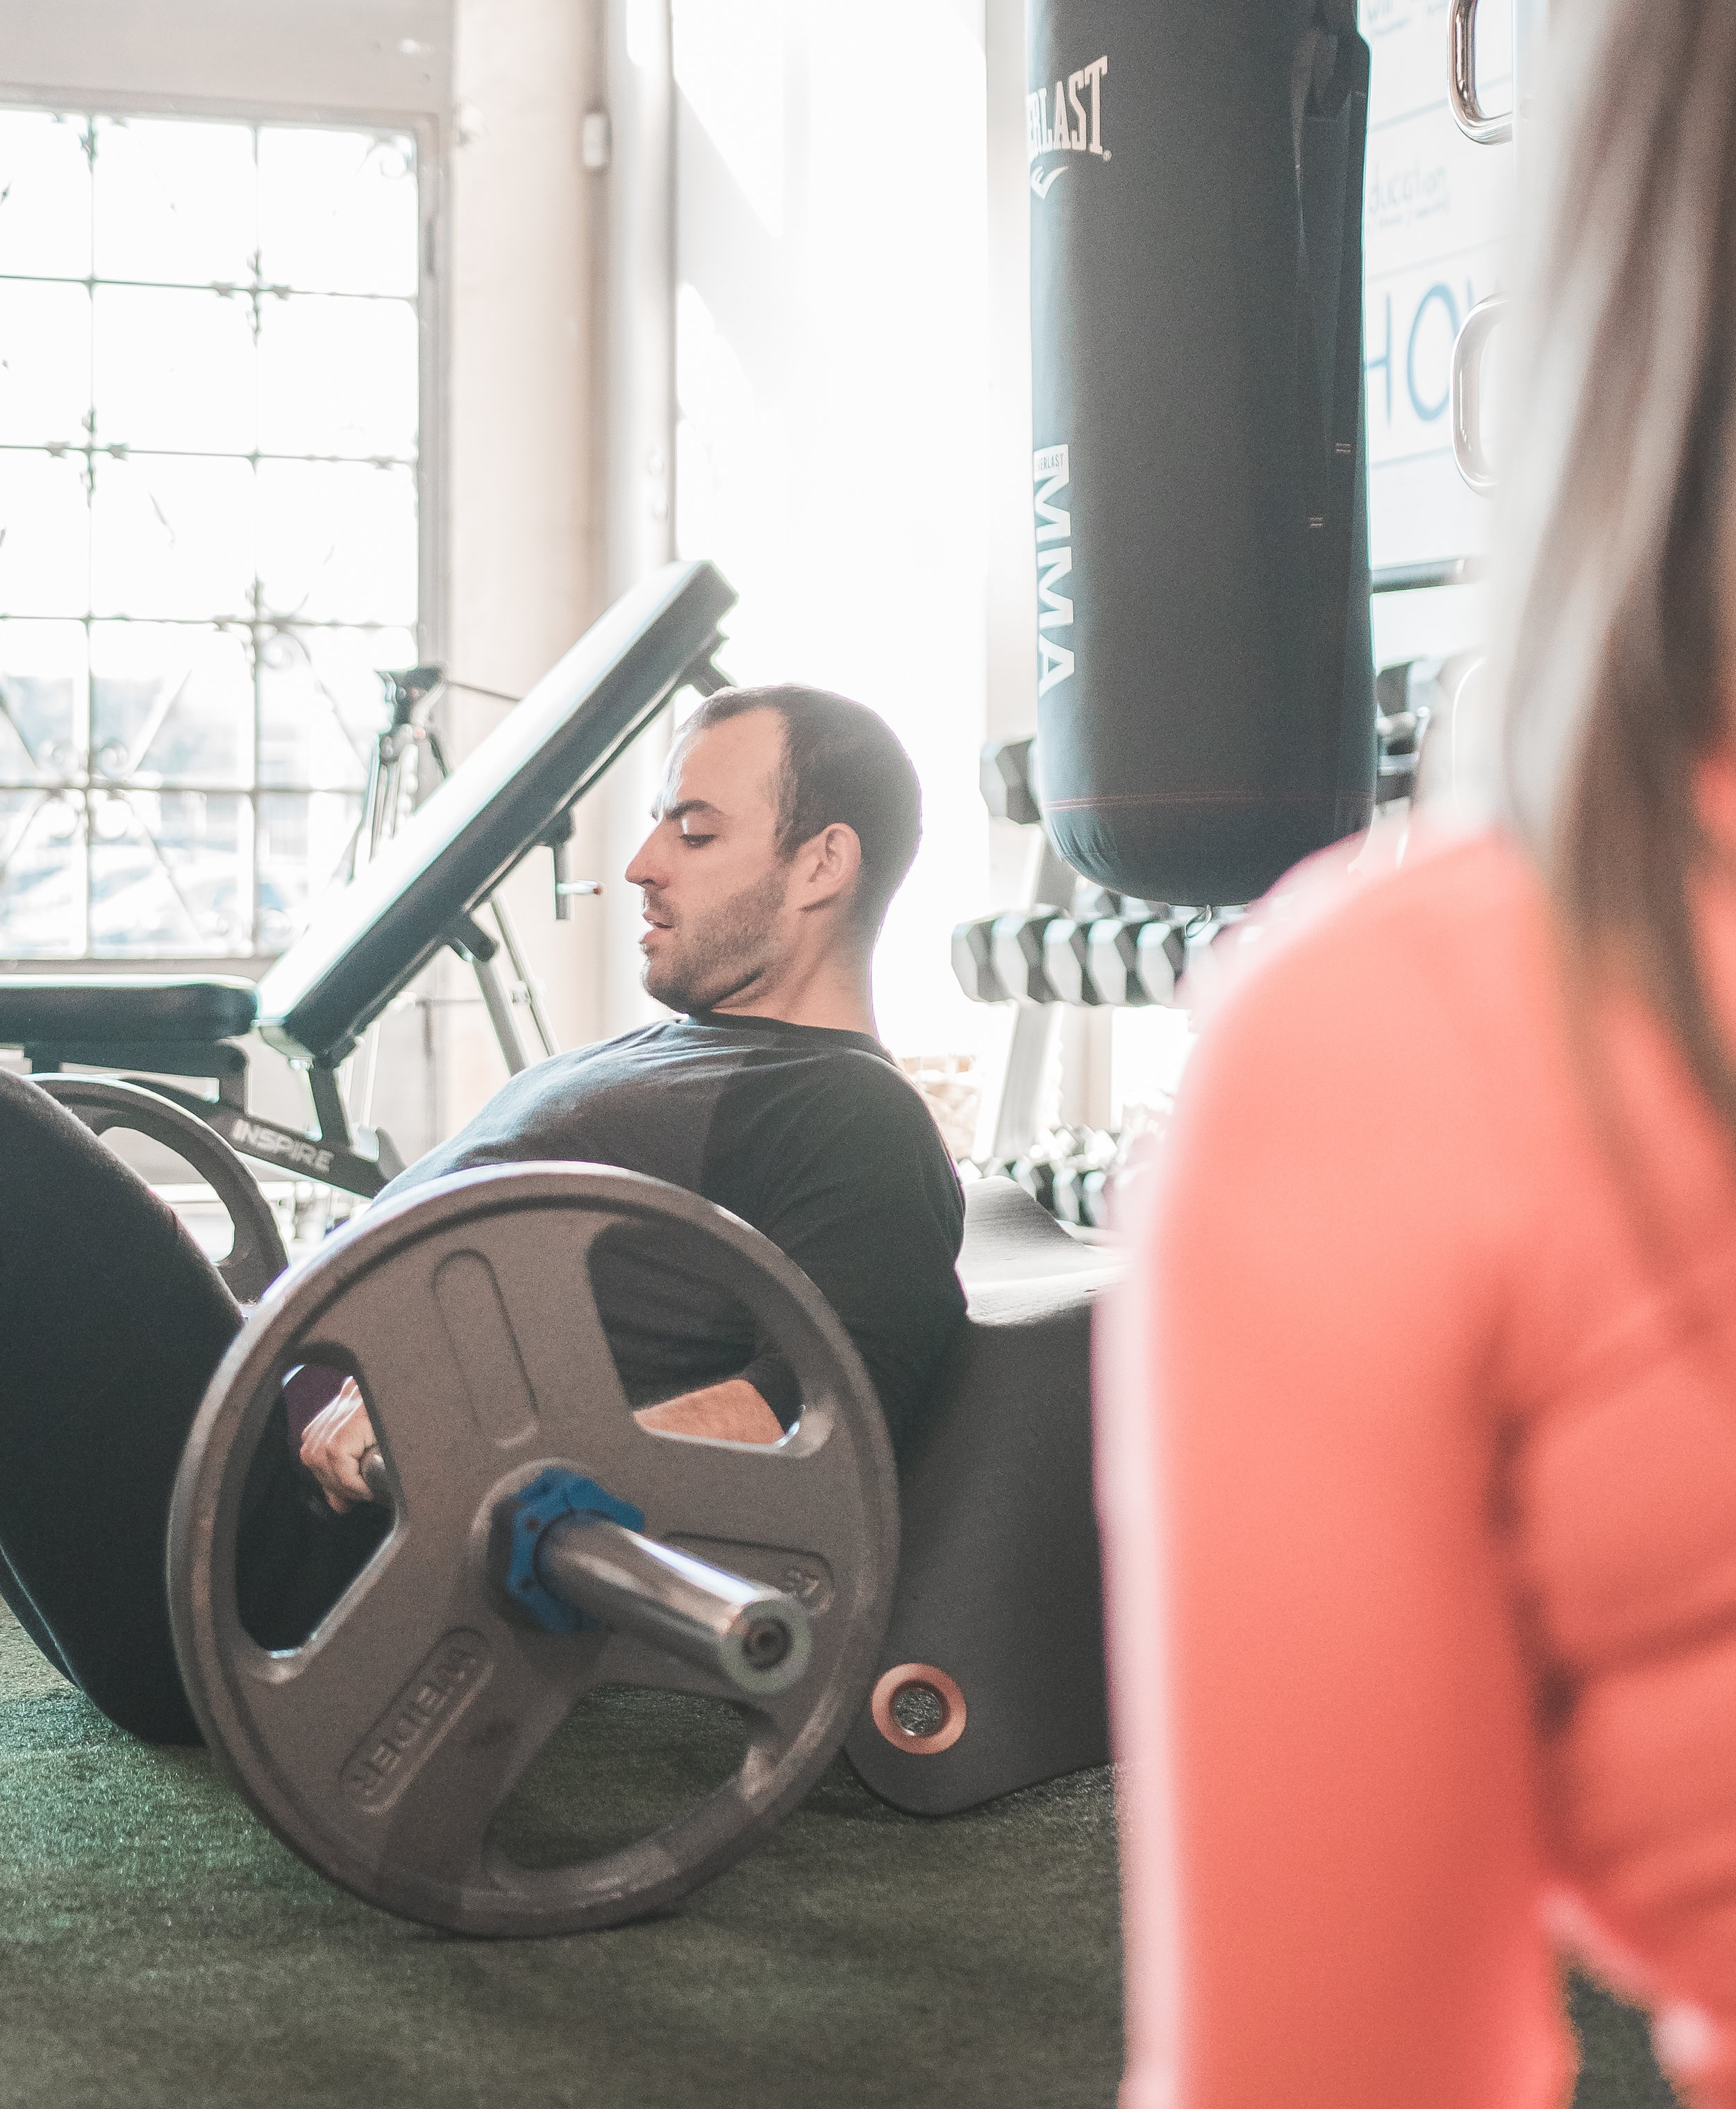 Show+Up+Fitness+Content+%28October%29-3.jpg